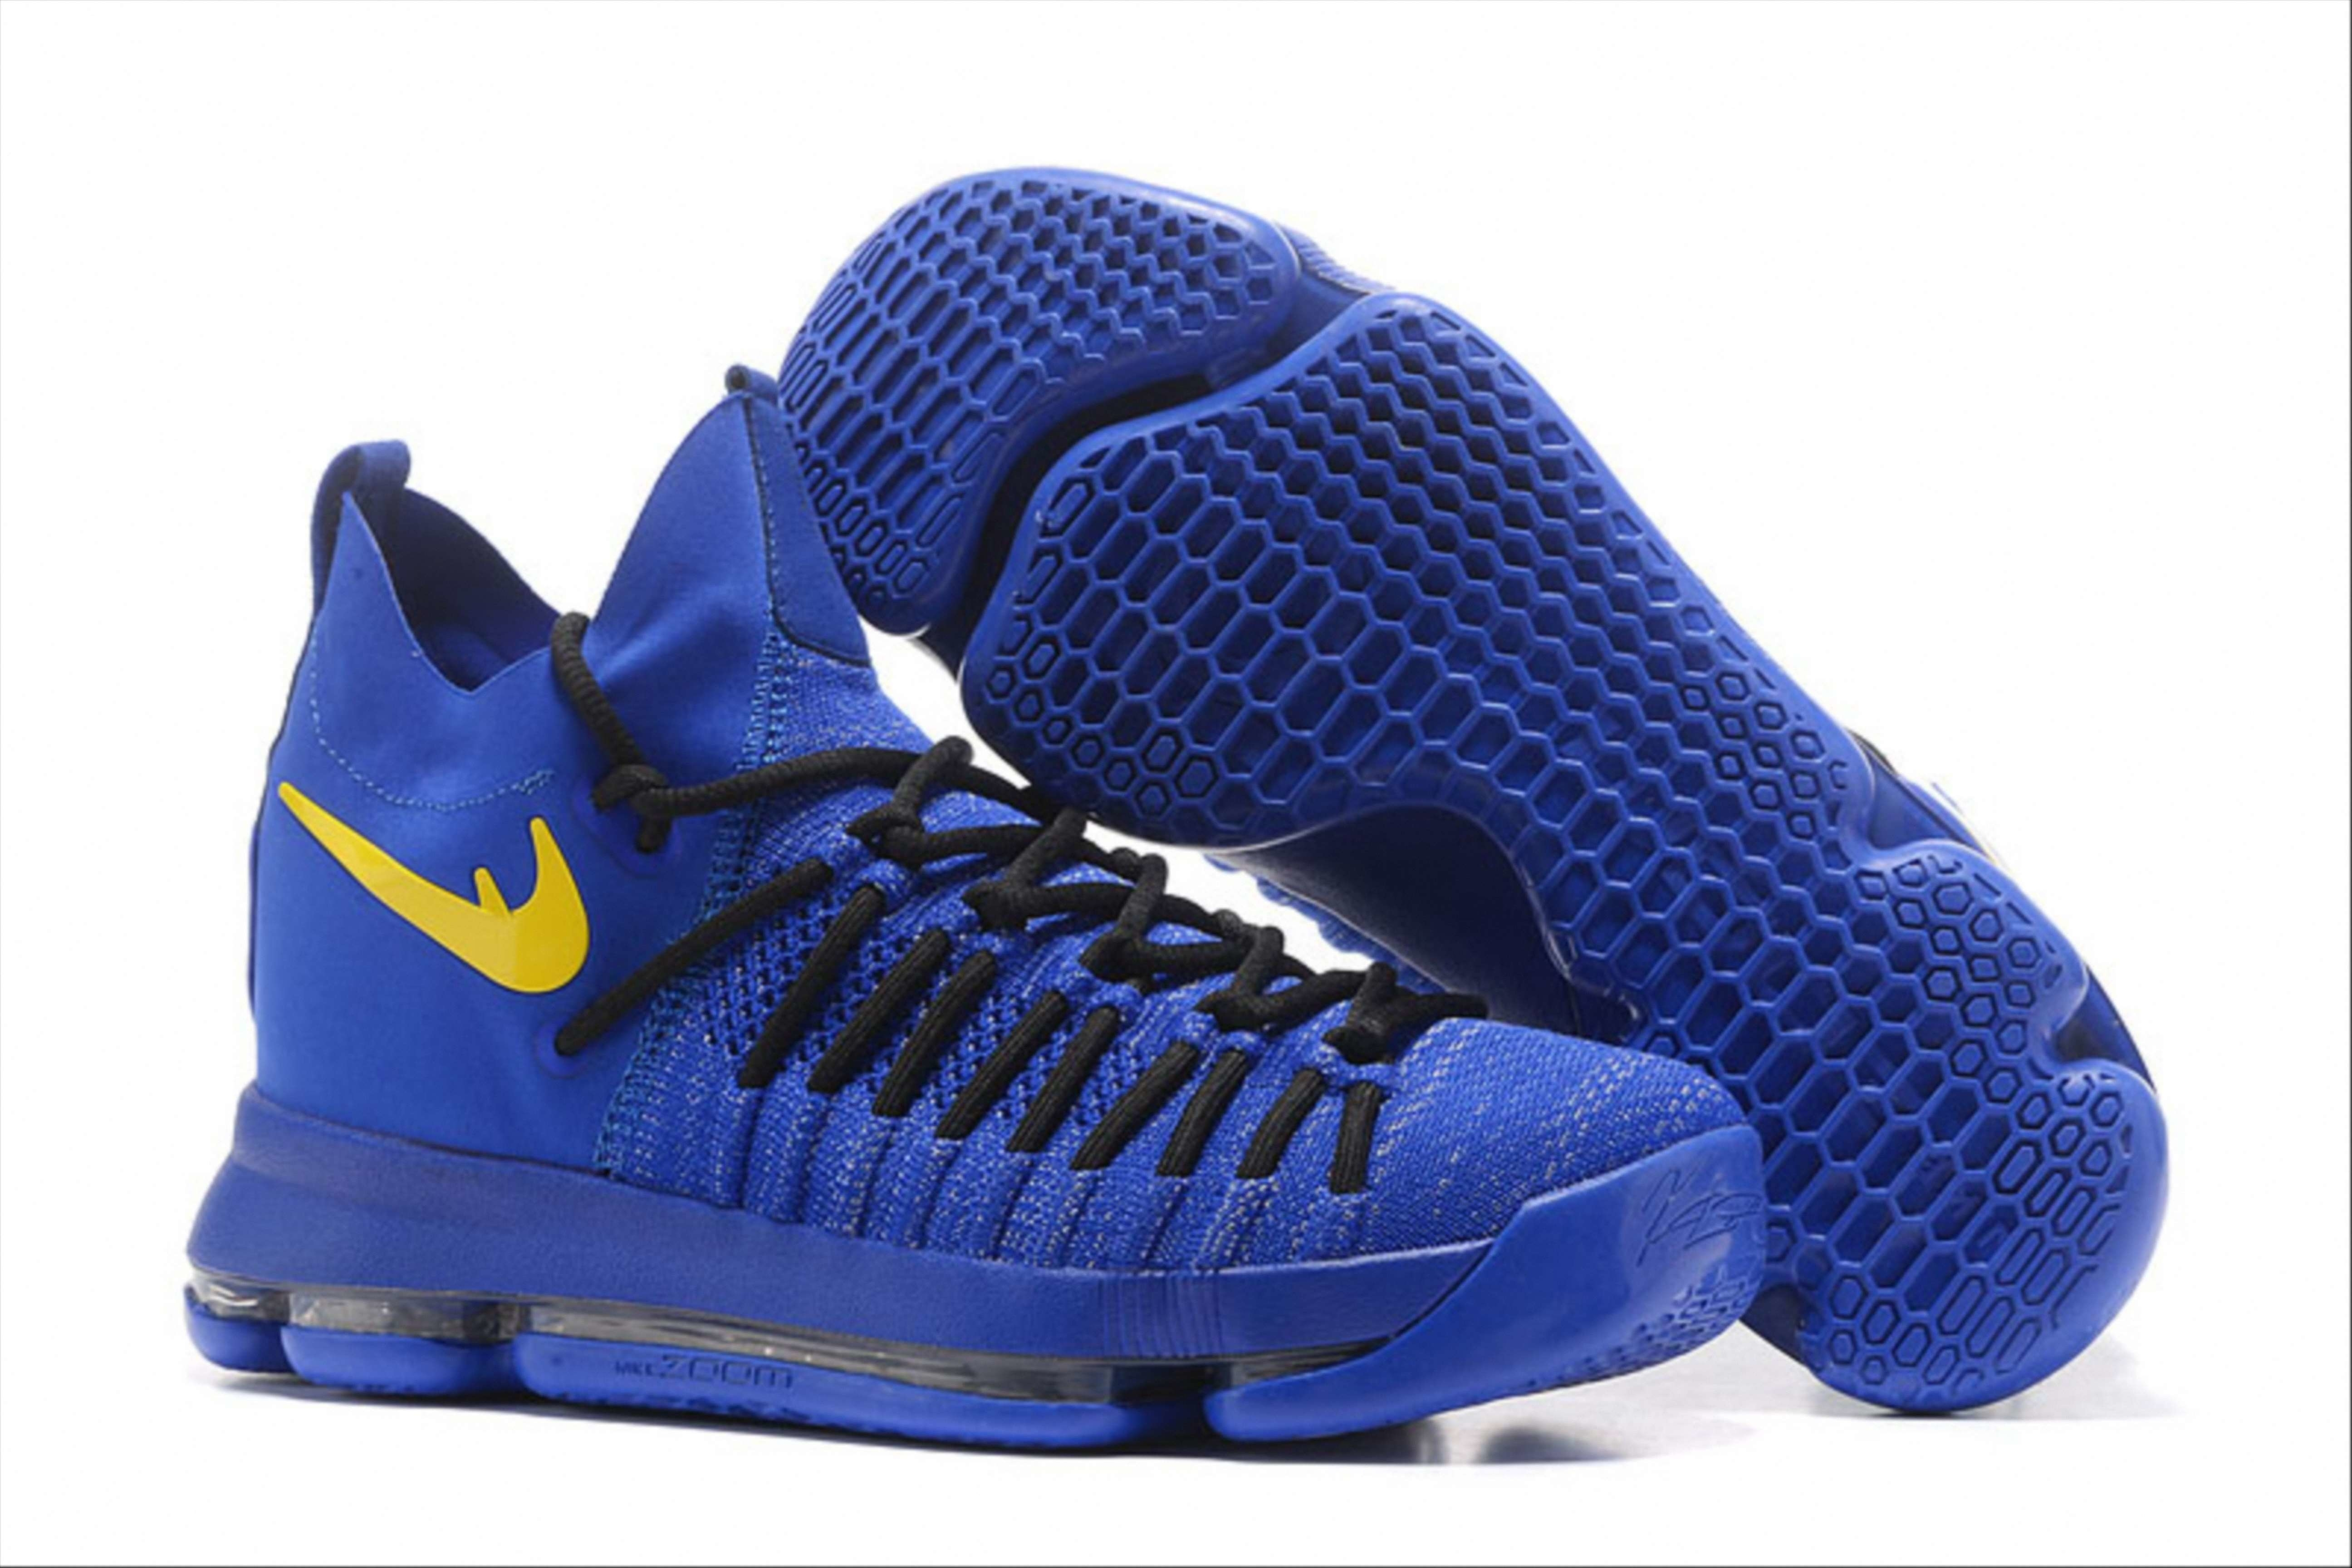 Sale Hot Kd 9 Mens Basketball Shoes Kd9 Oreo Grey Wolf Kevin Durant 9s Men S Training Sports Sneakers Warriors Home Us Size 7-12